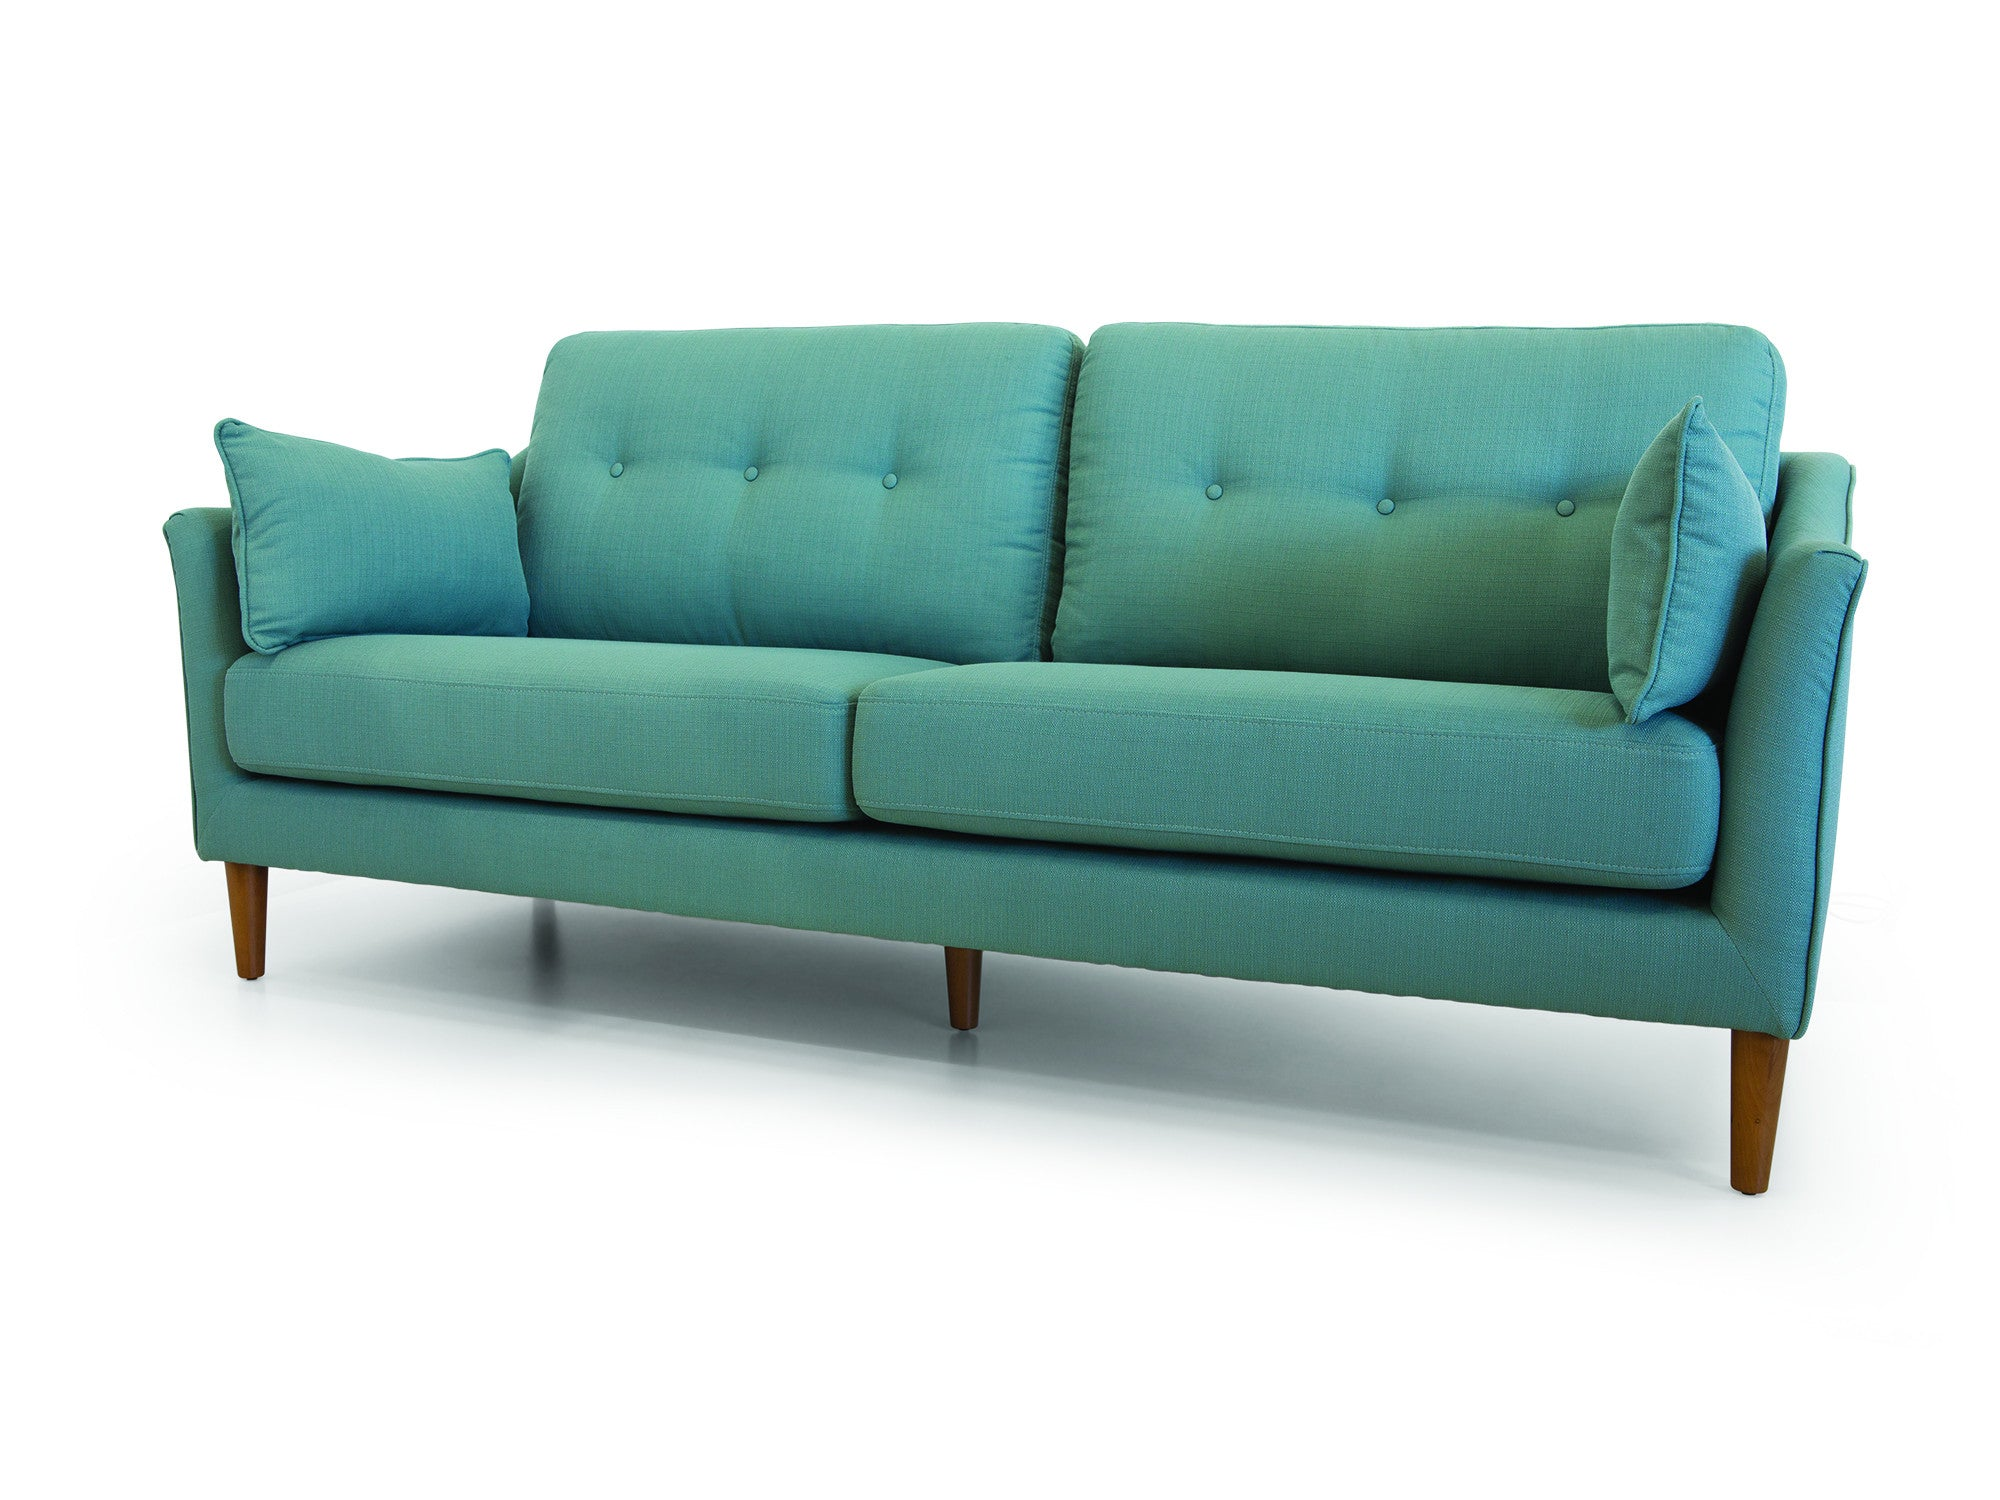 Sandy sofa laguna meubles newell furniture for Meubles newell montreal